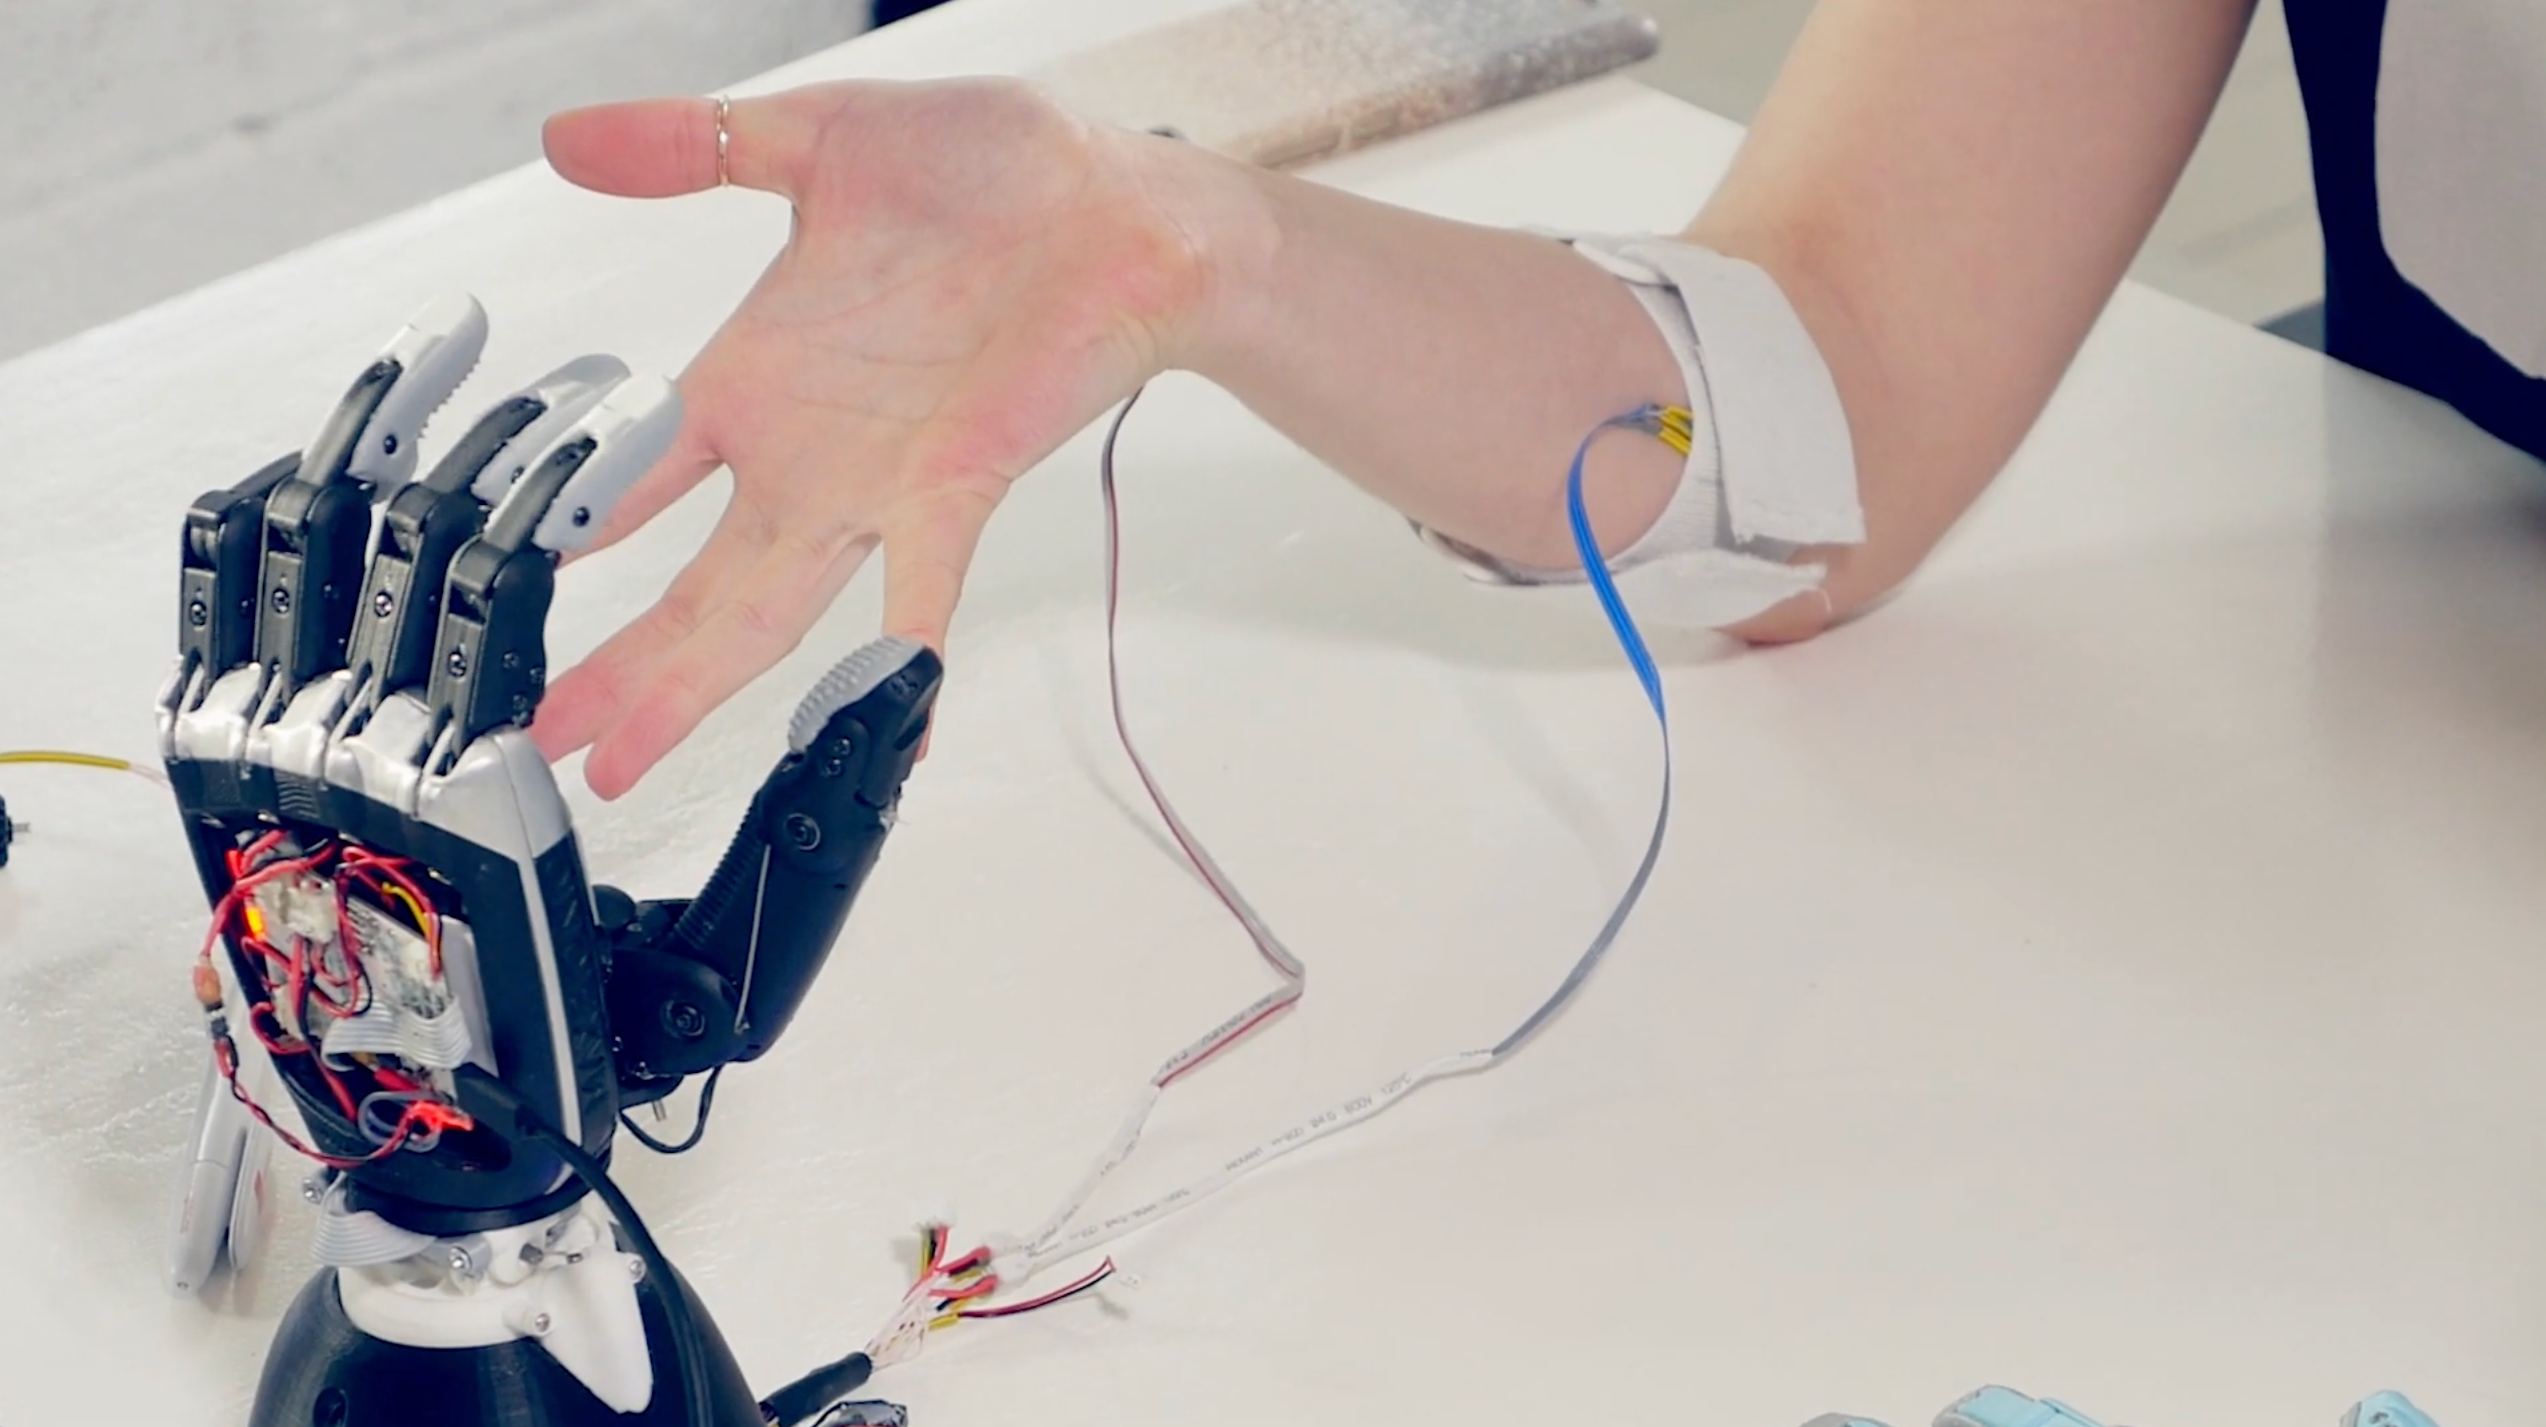 A person with sensors attached to their arm controls a robotic hand